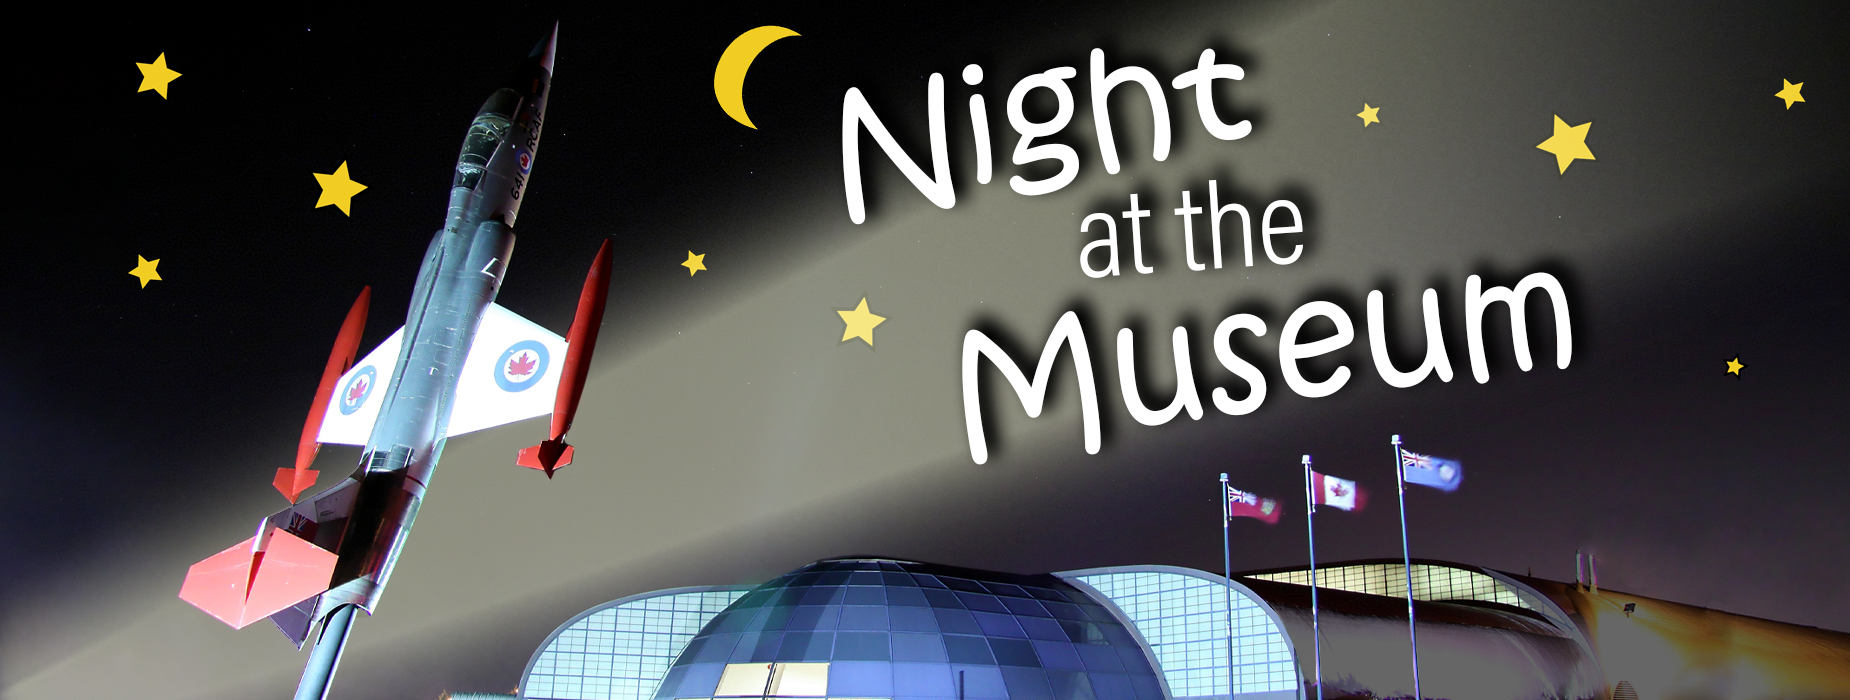 Poster for - Night at the Museum